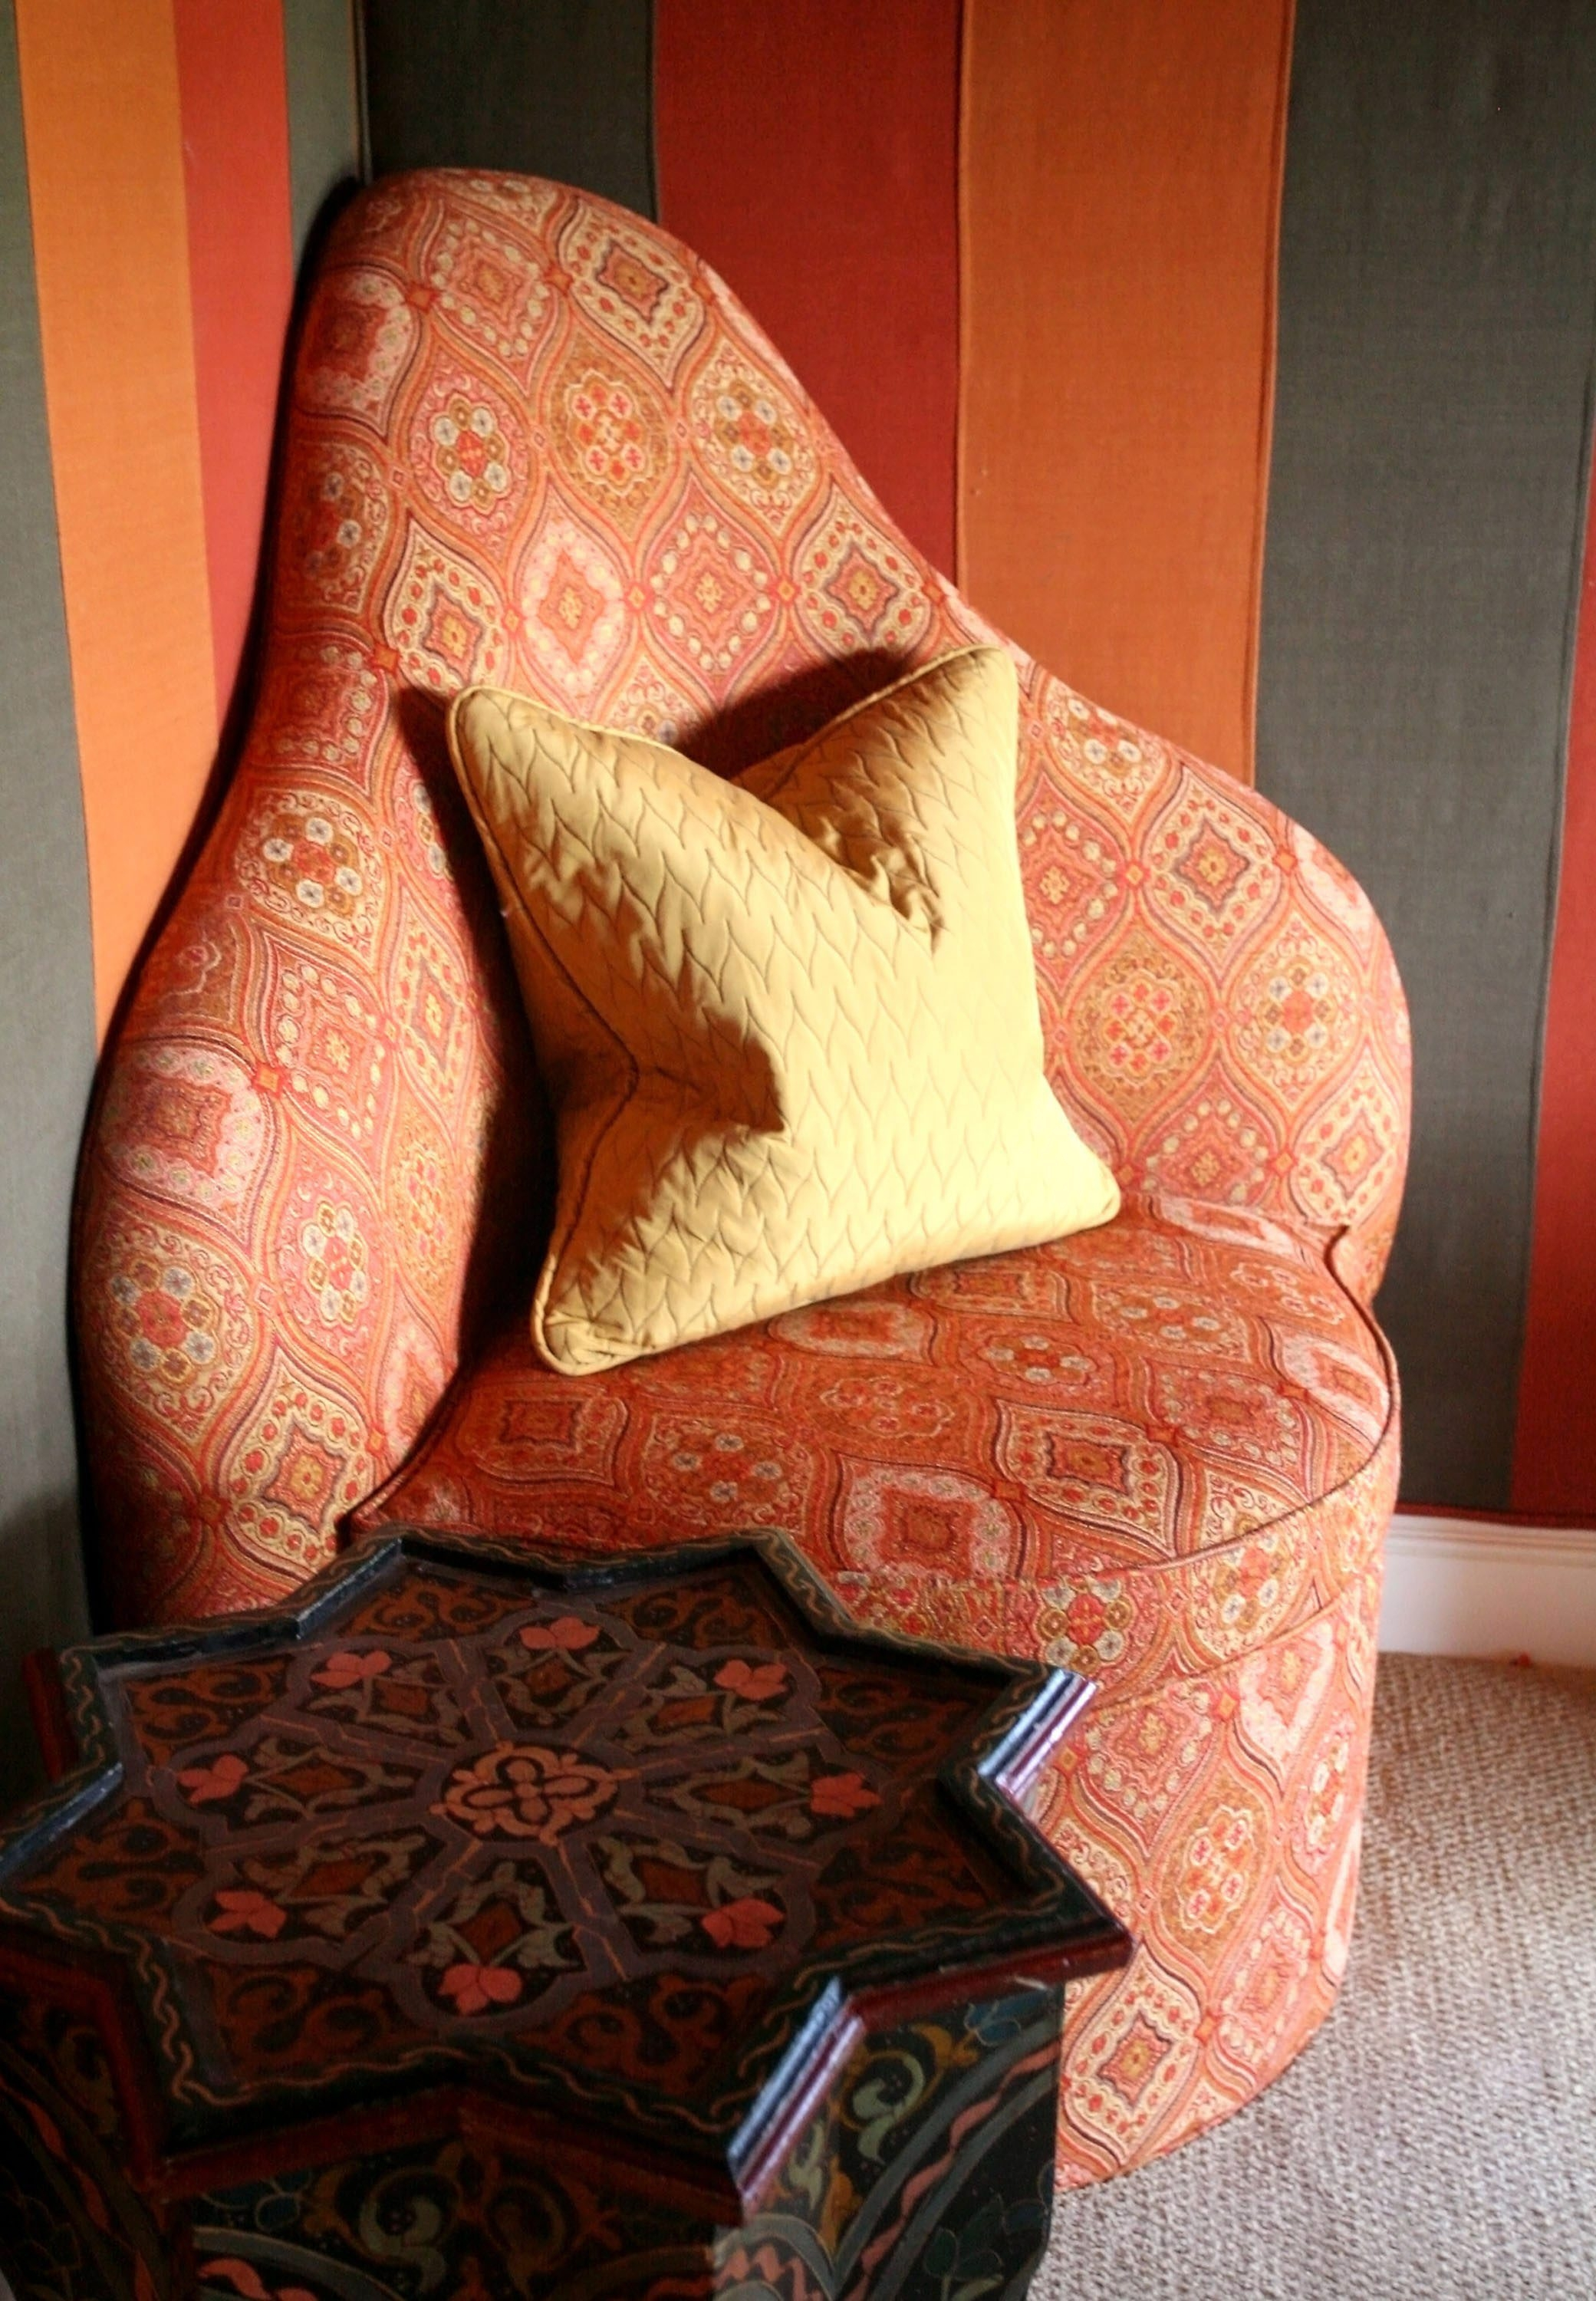 Turkish chairs rest in the corners of a Moroccan-themed billiard room. (Jacob Langston/Orlando Sentinel/MCT)